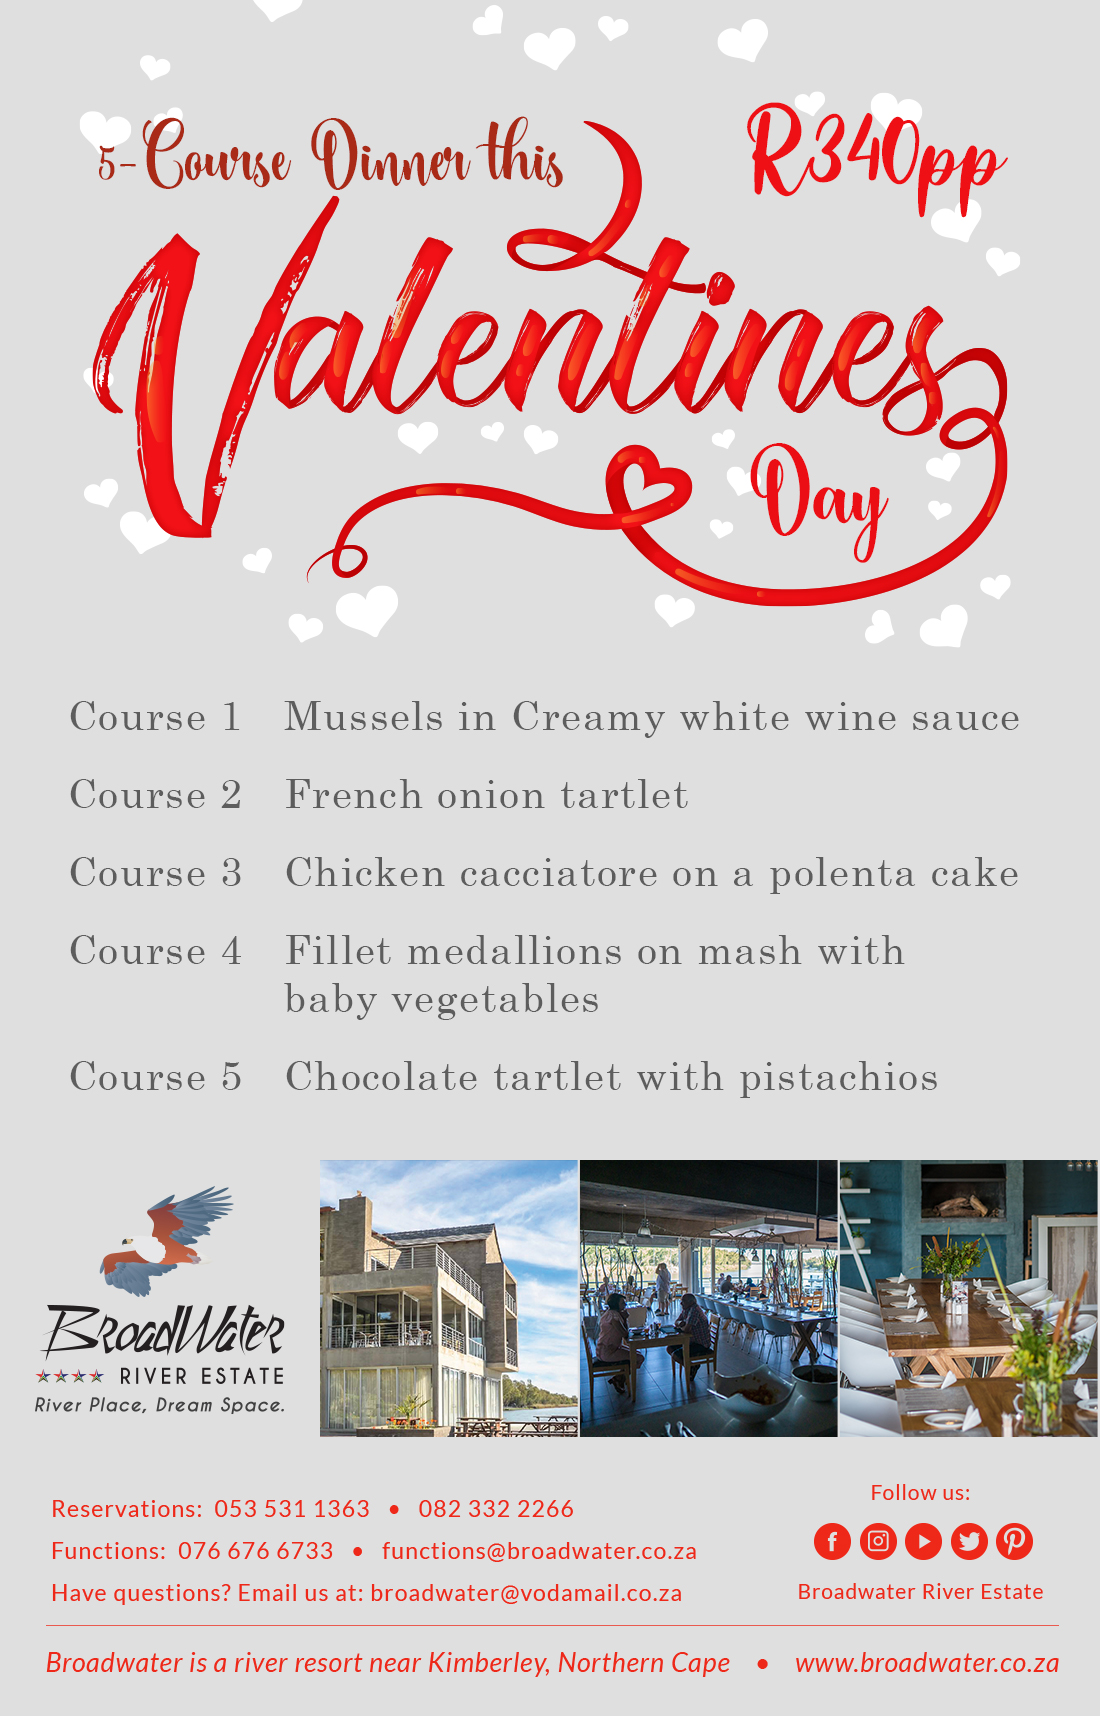 5 course dinner this valentines day